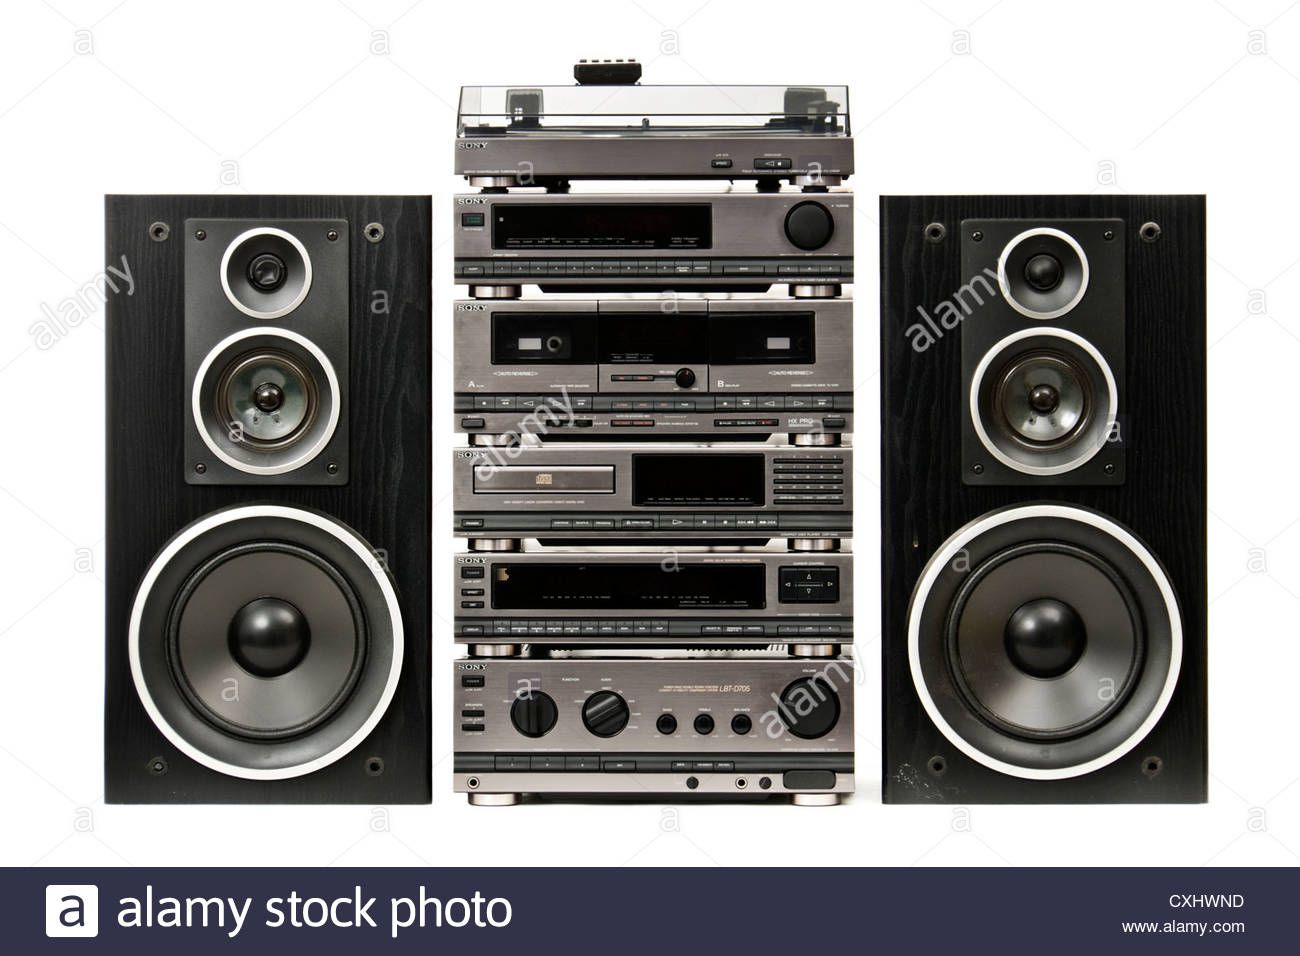 Download This Stock Image Vintage Sony Lbt D705 Integrated Hi Fi